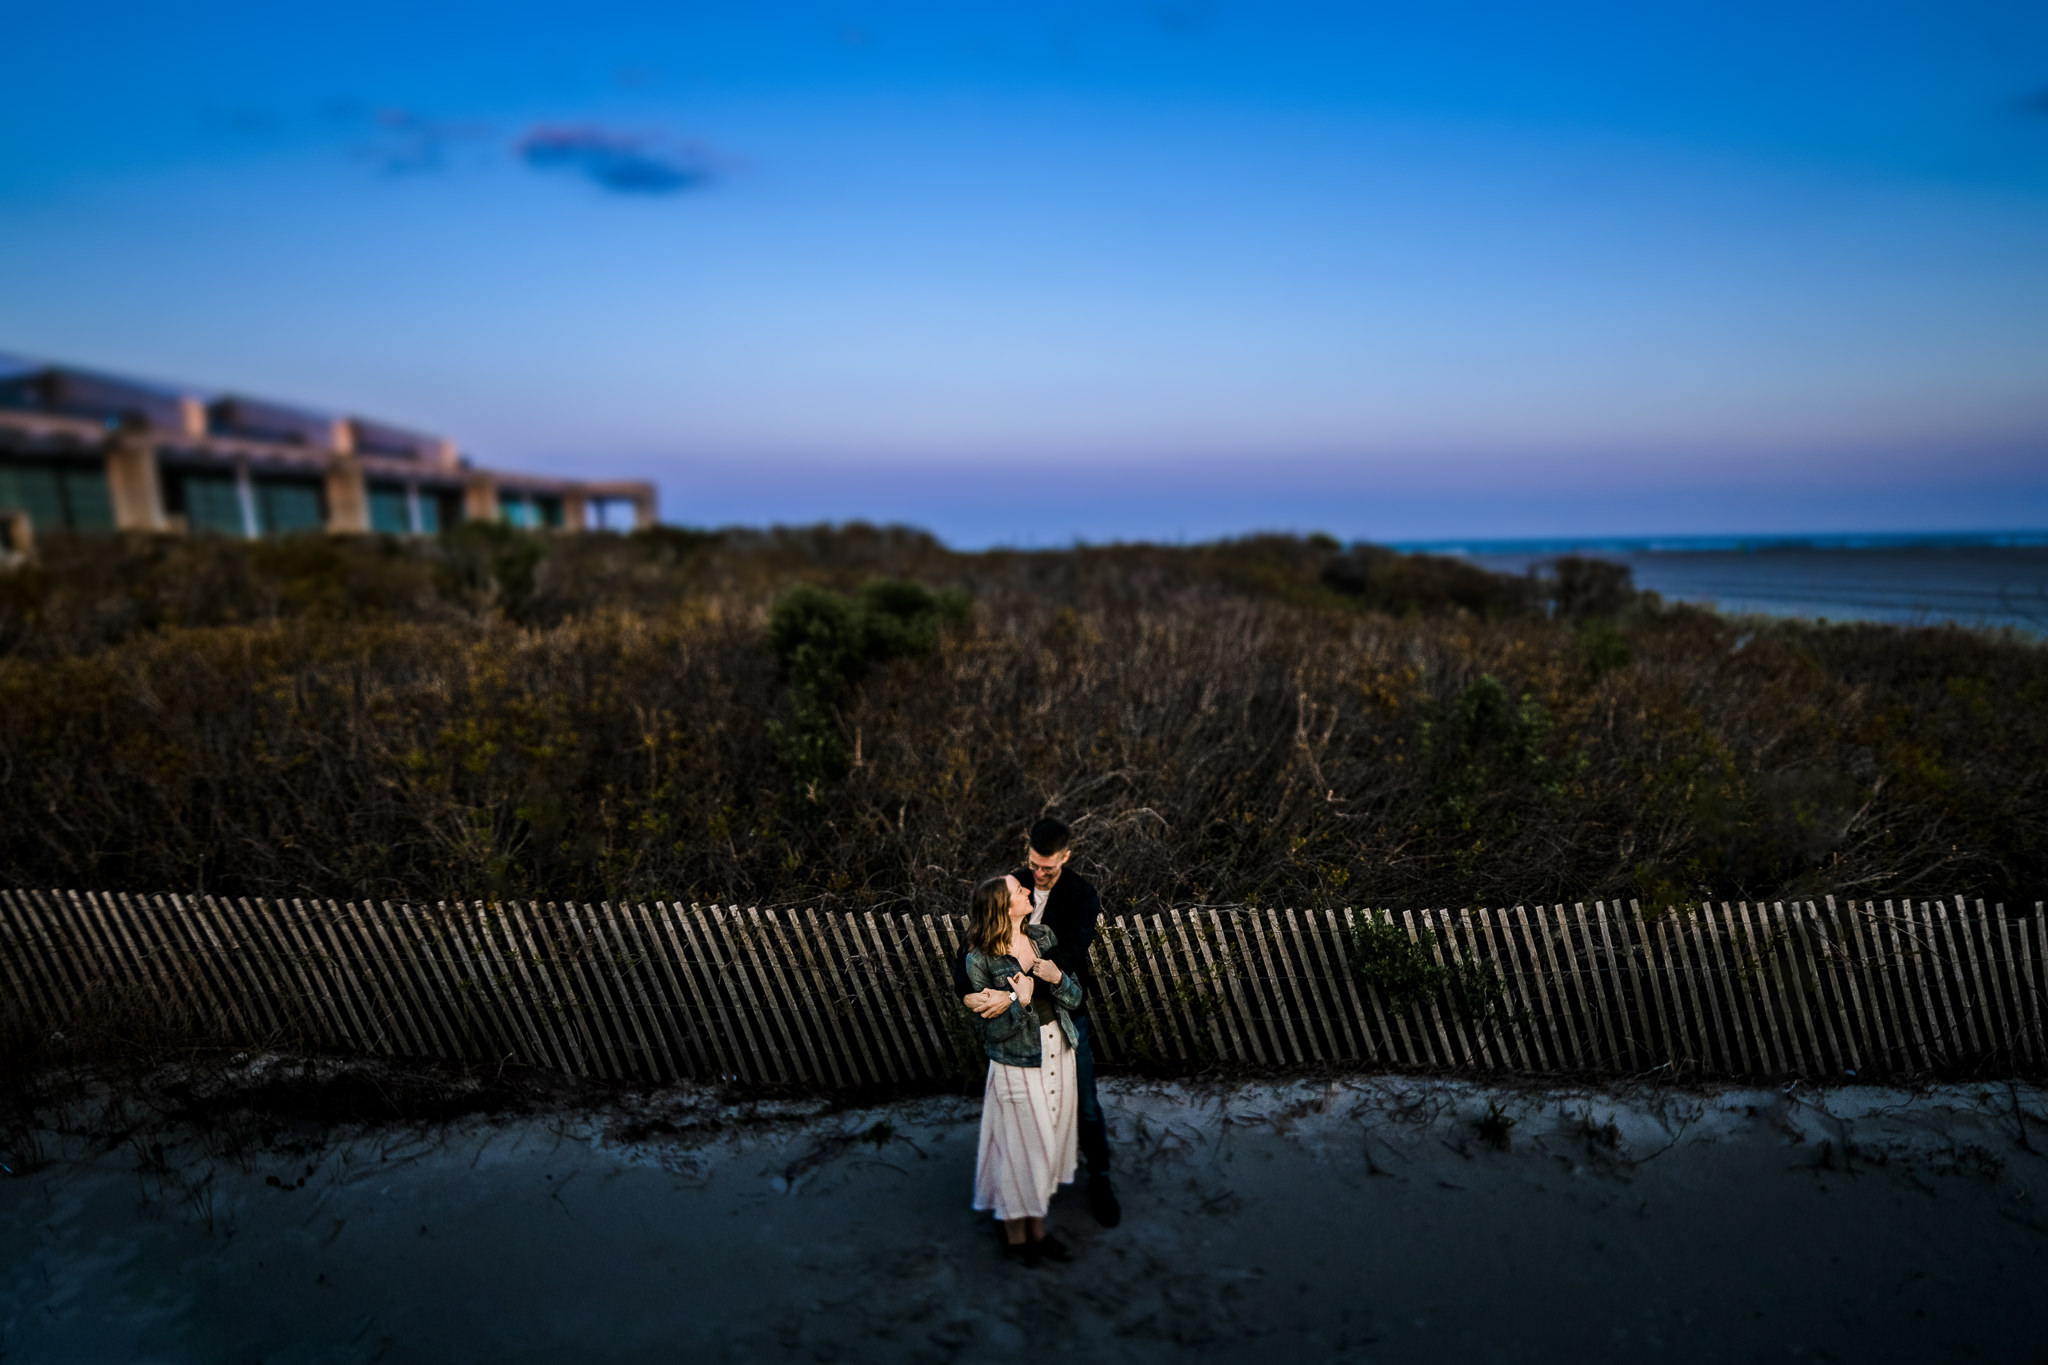 Robbins-Wildwood-Cape-May-Engagement-Photos-NJ-Photographer-15.JPG